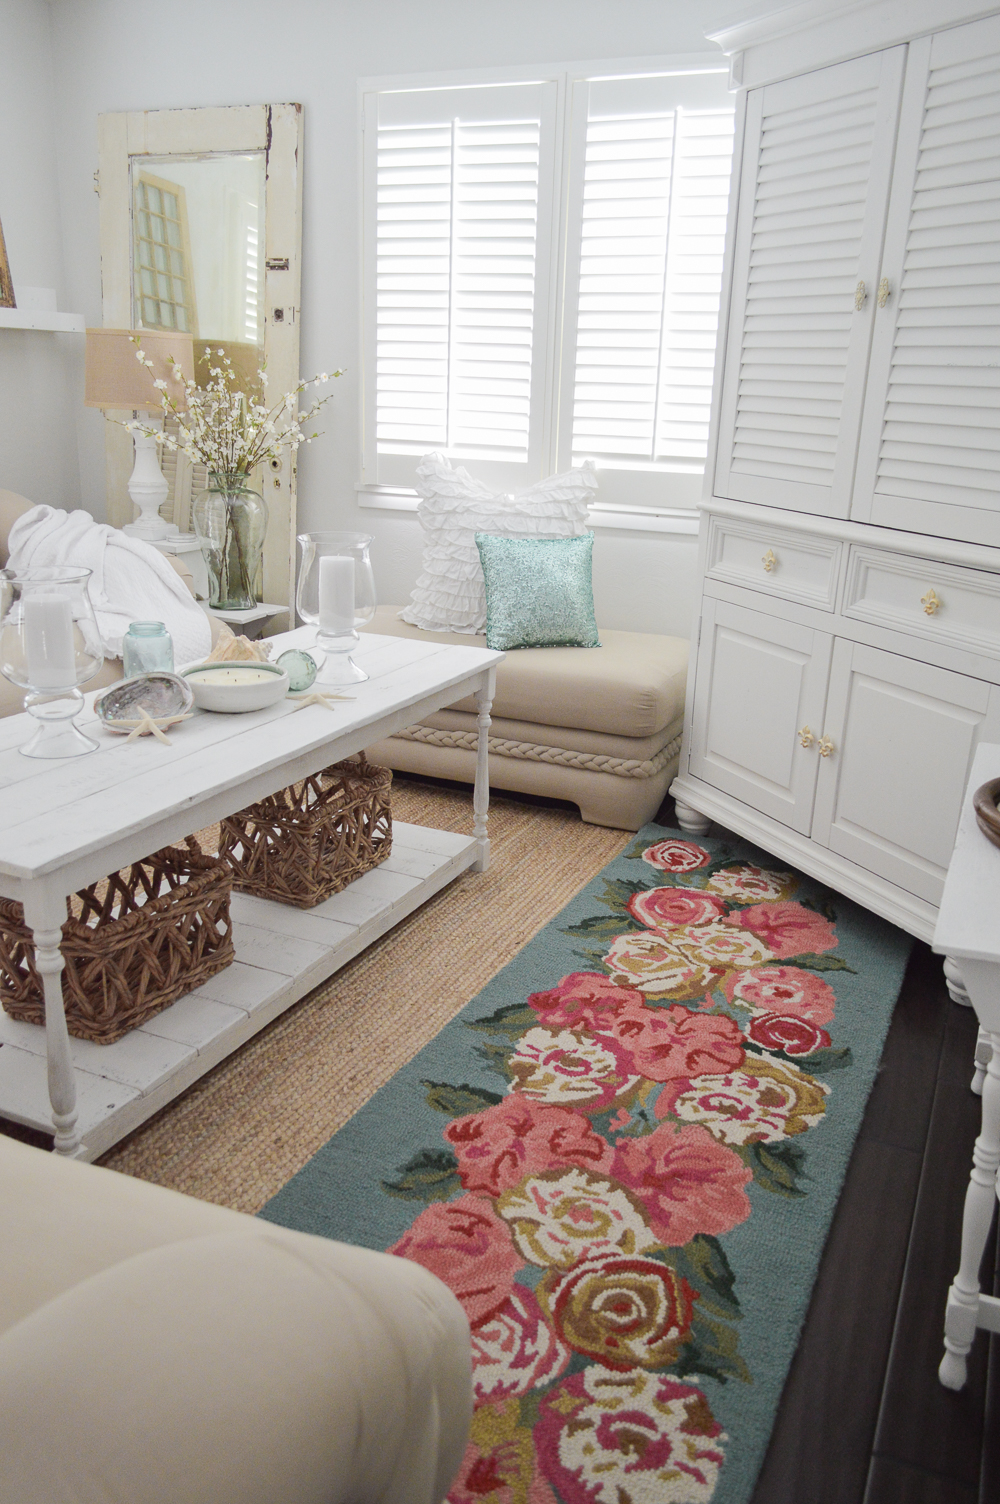 Coastal cottage mix with vintage and shabby white painted furniture